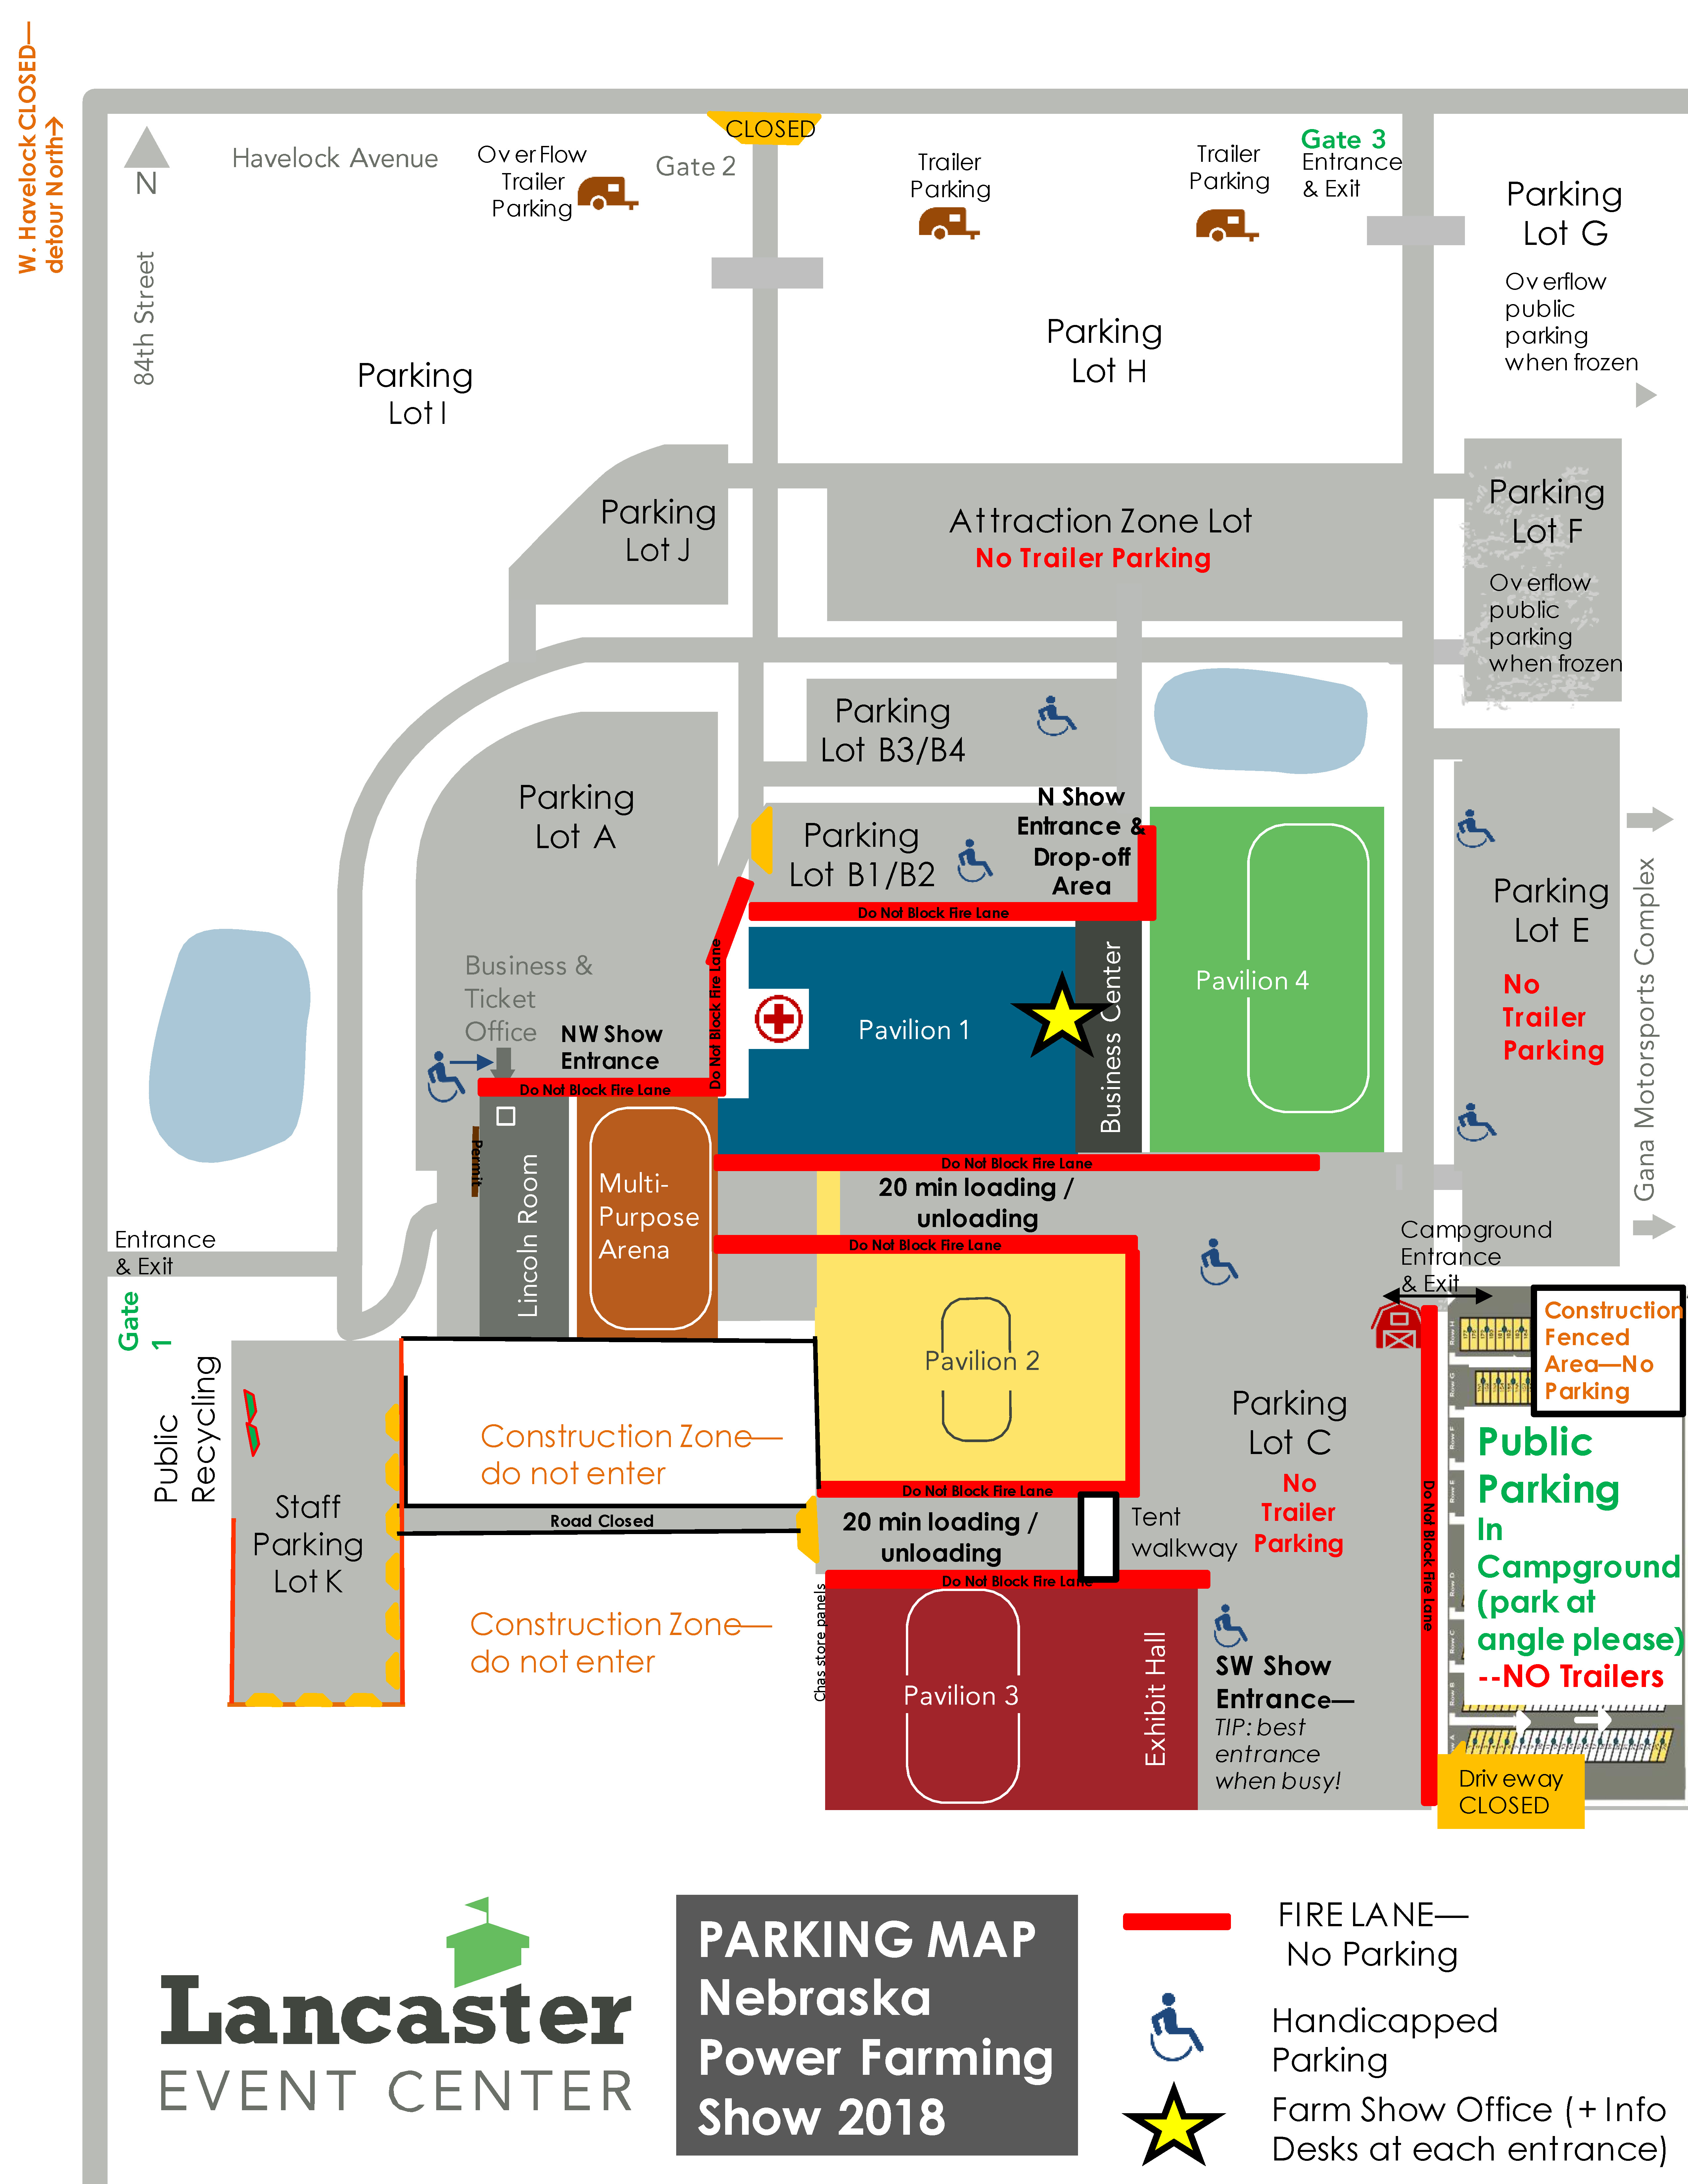 LEC NE Power Farming Show 2018 Public Parking Map